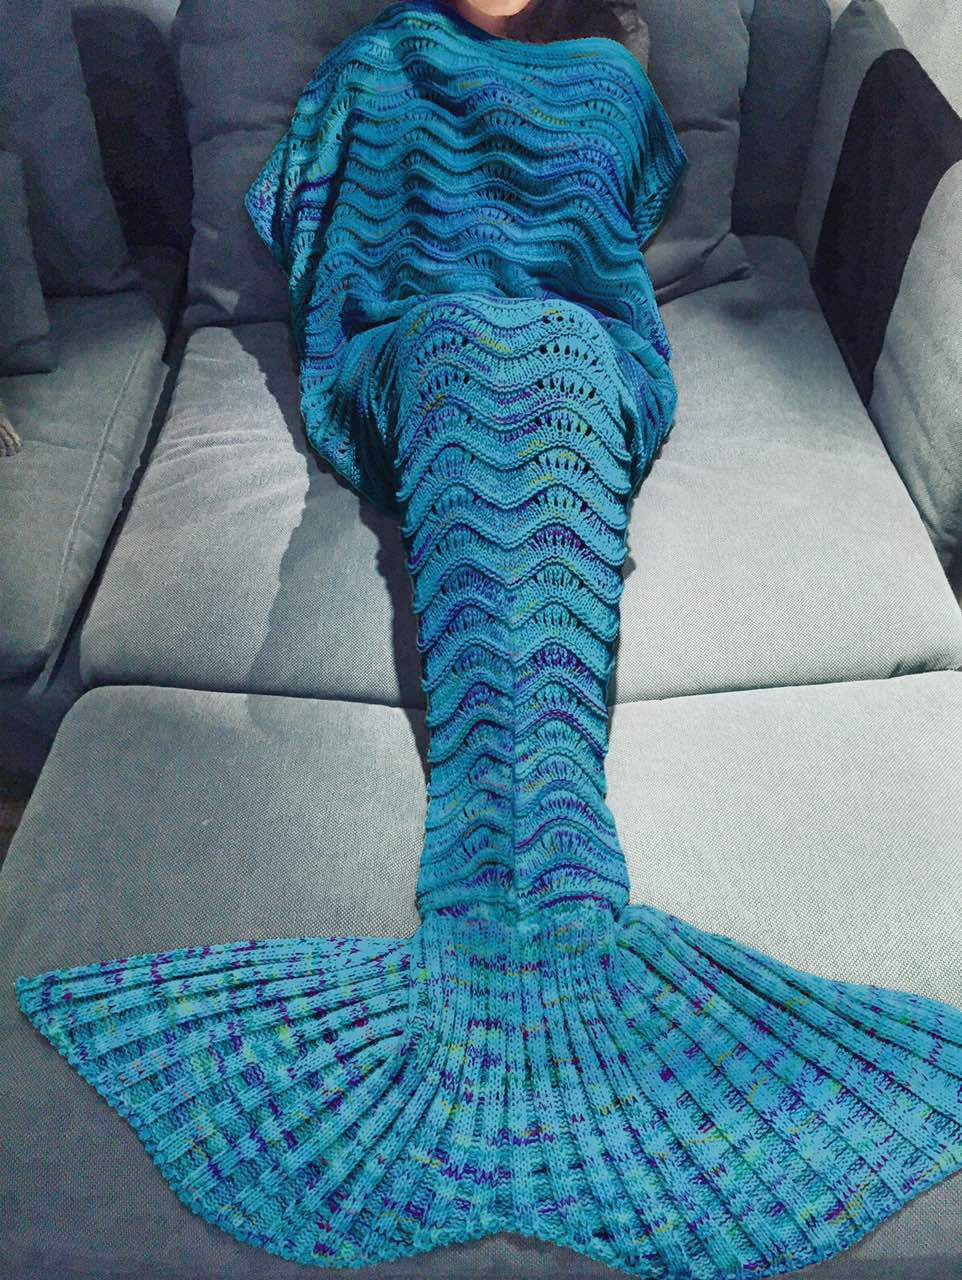 Whoishe Cozy Knitted Crocheted Adult Mermaid Tail Blanket with Wave Pattern Couch Blanket Home Decoration Birthday Saint Valentine's Day Gift ( Color Royal Blue)